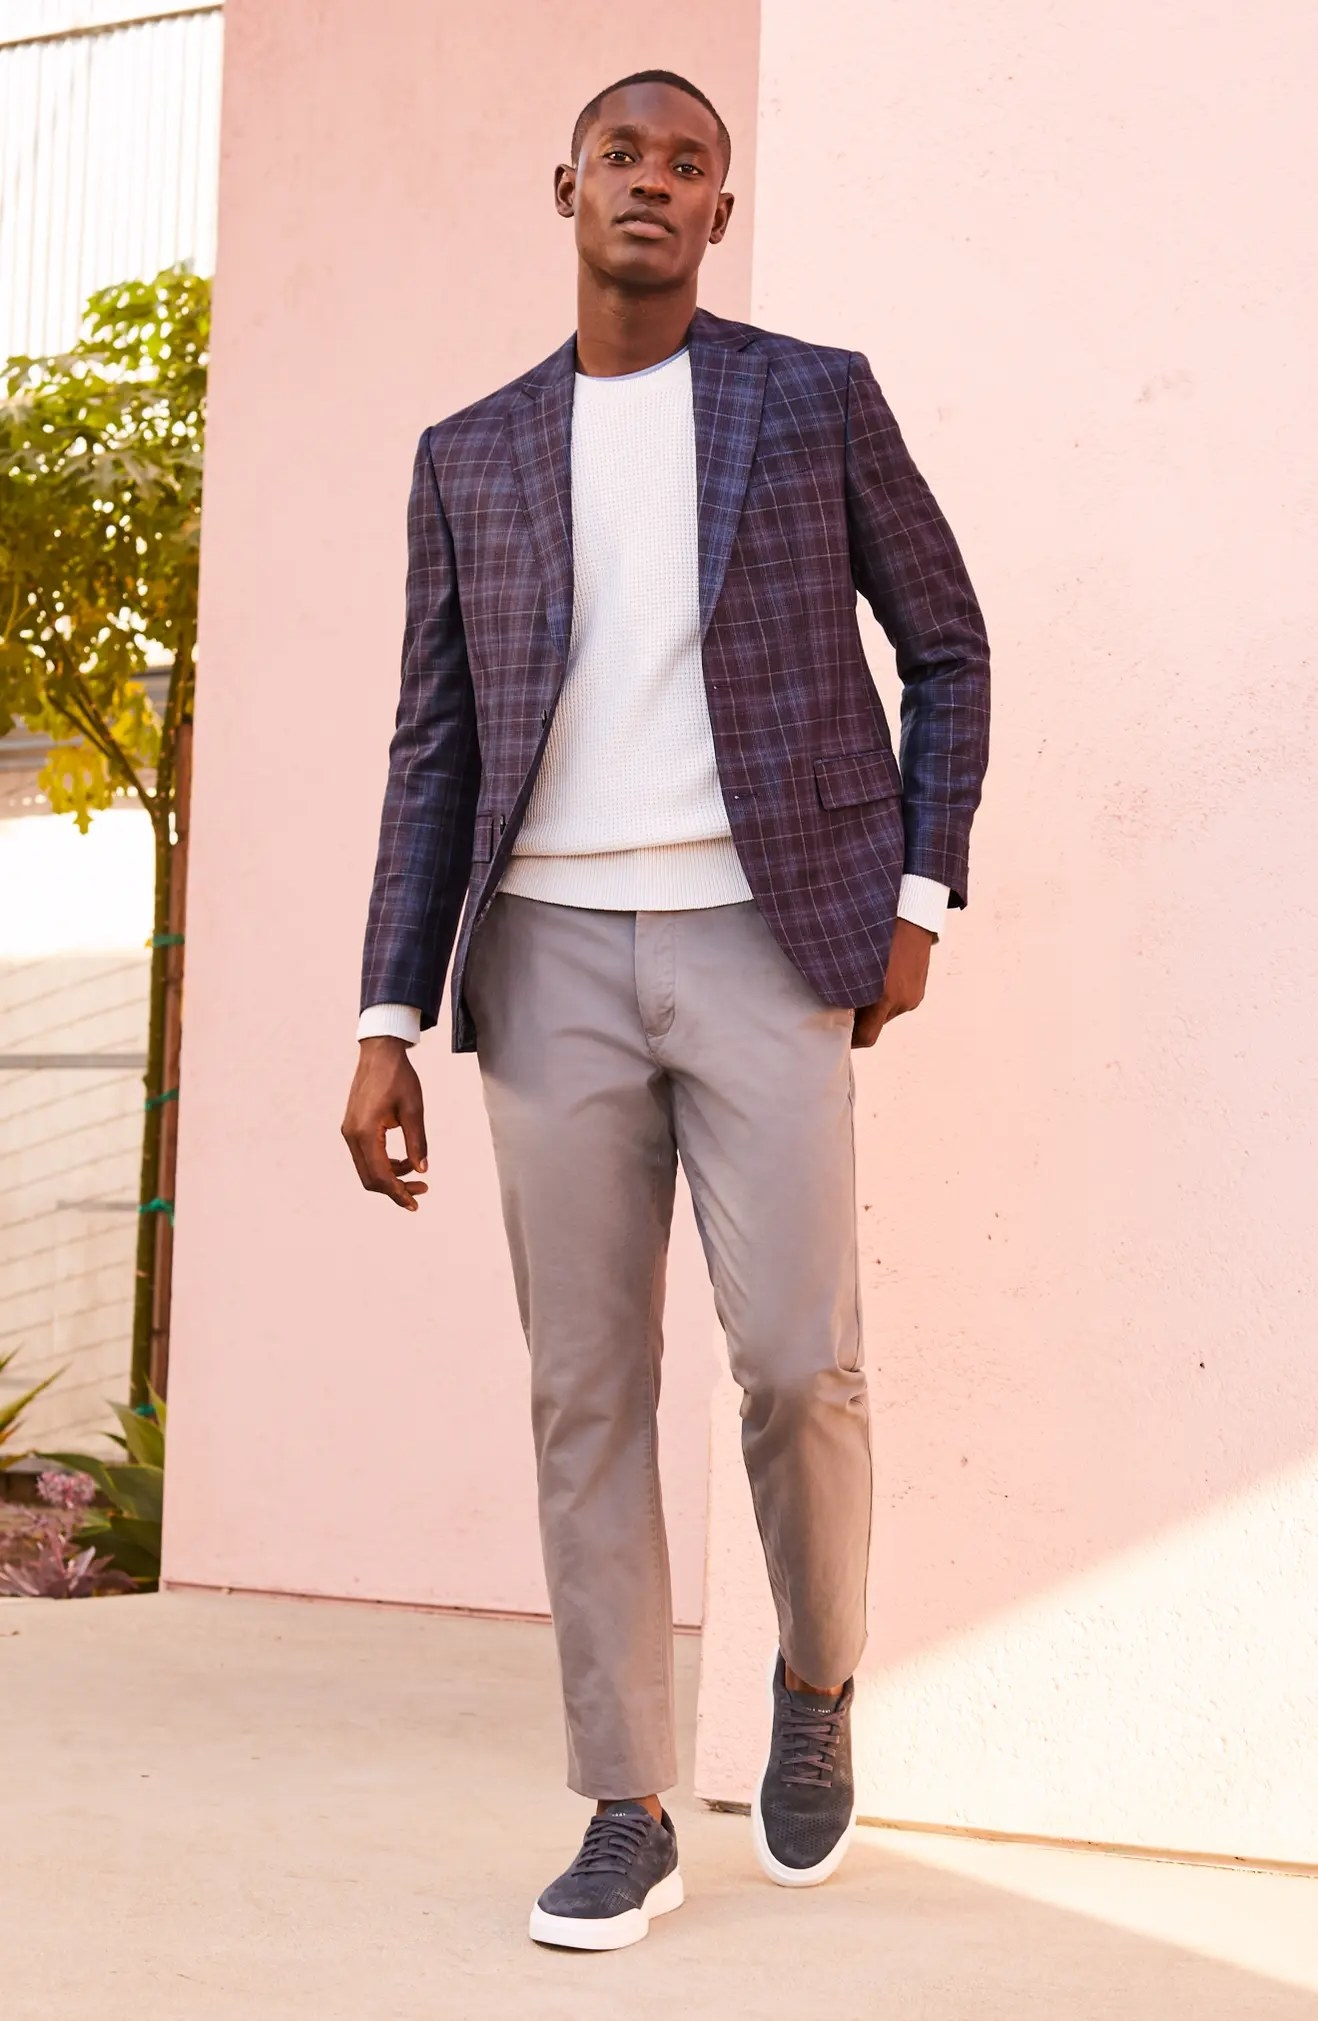 A model wearing the chinos in grey